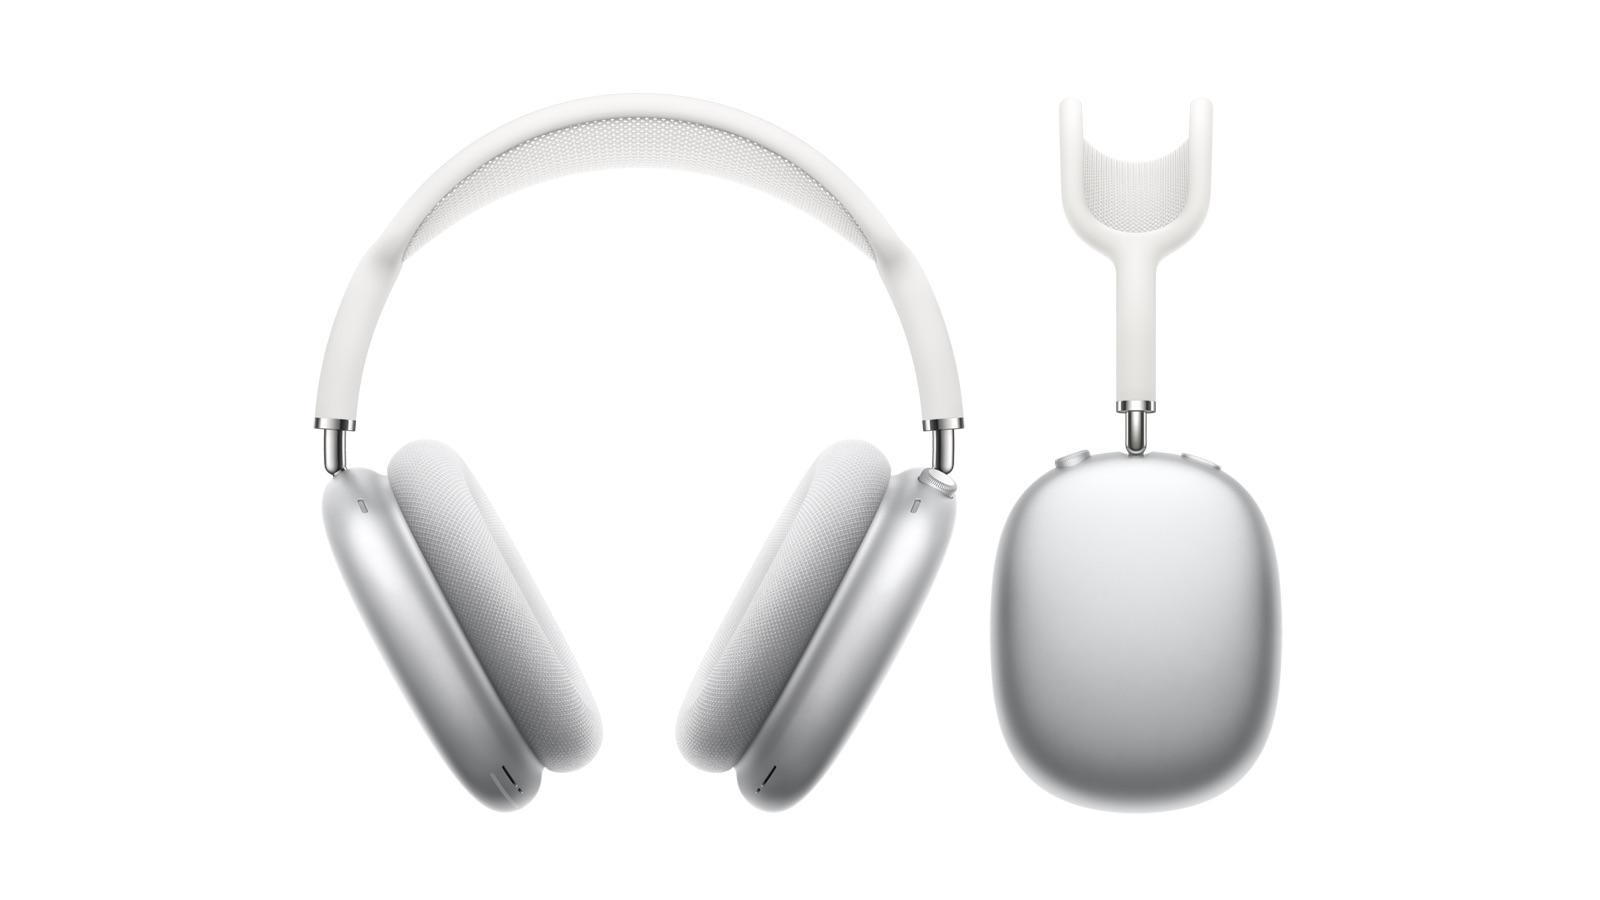 Apple AirPods Max Over-ear Headphones in silver front and side views